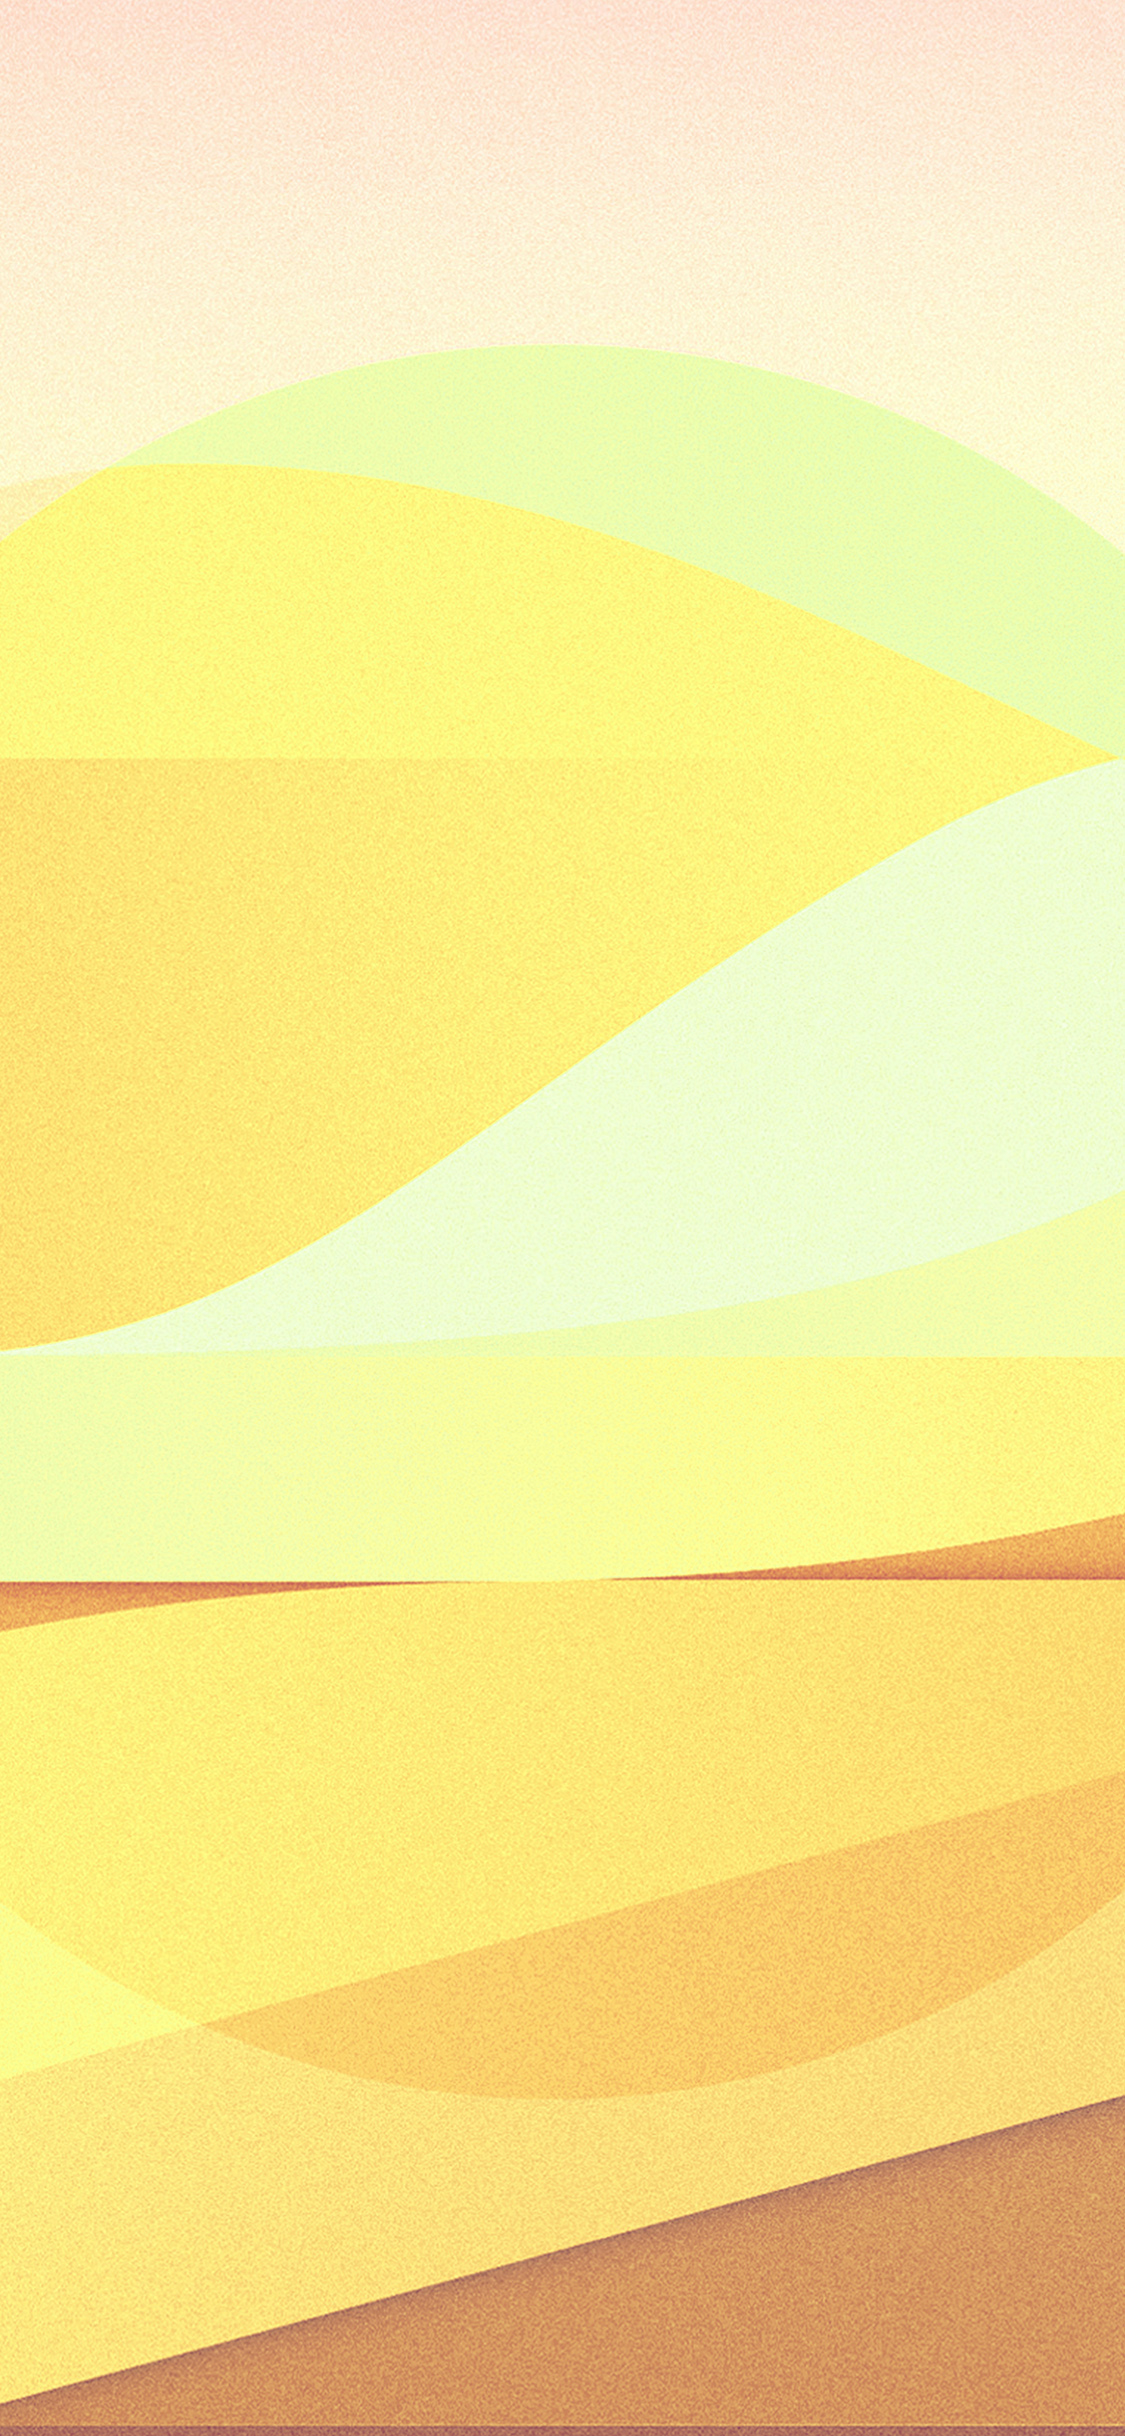 iPhonexpapers.com-Apple-iPhone-wallpaper-vx55-sun-rise-pattern-background-yellow